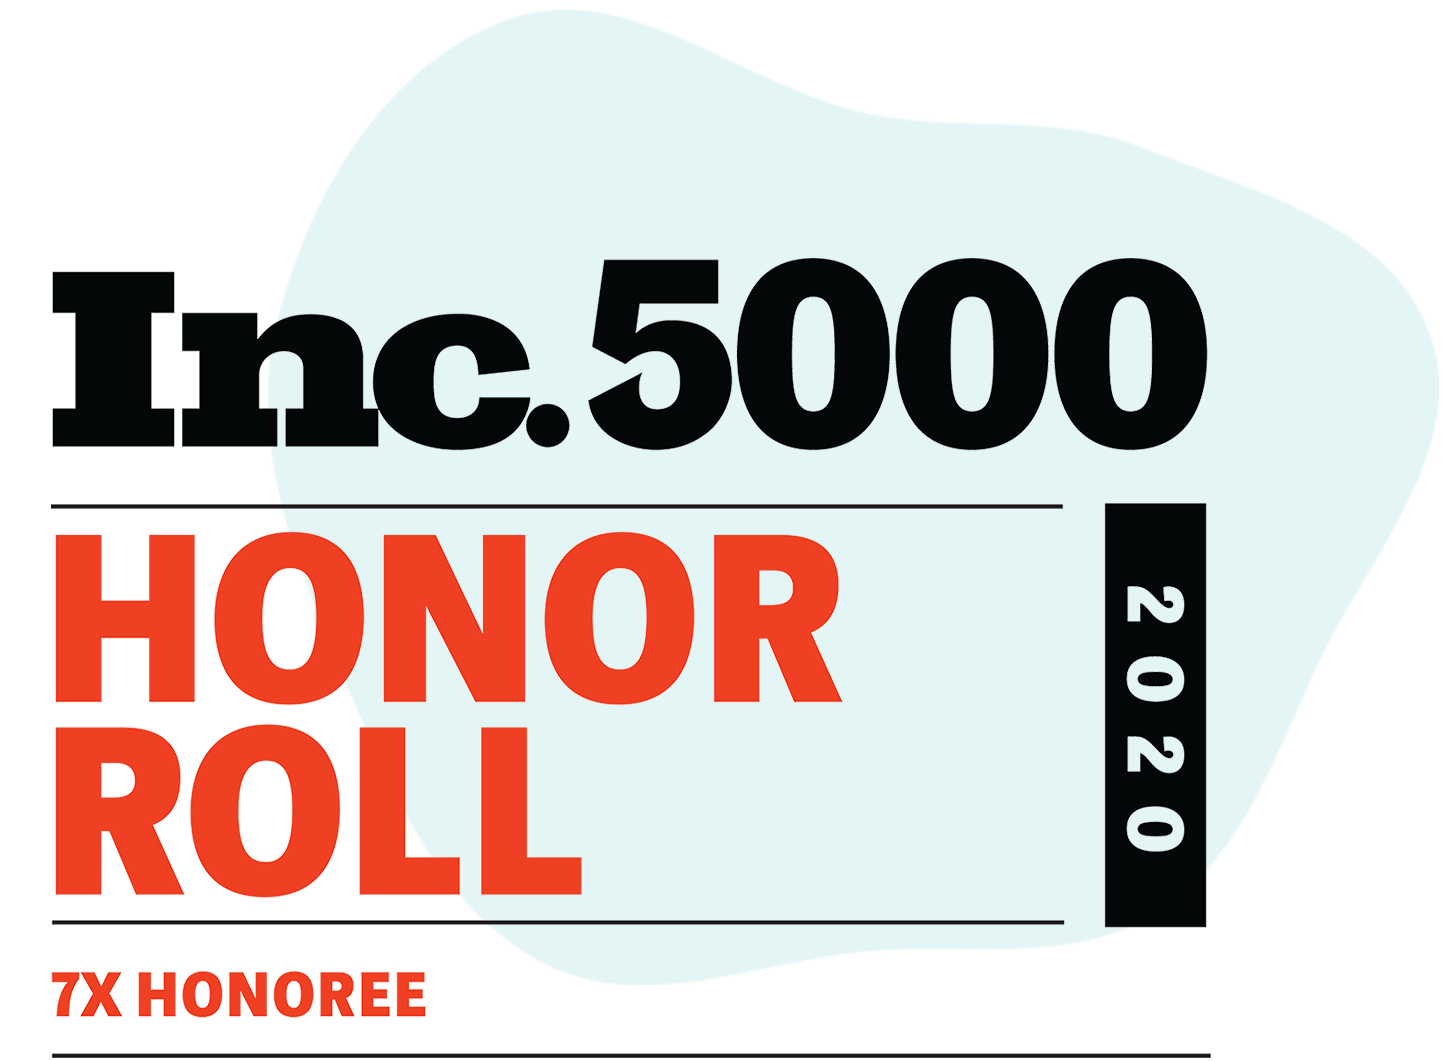 7 Time Inc5000 Honoree AltSource Software